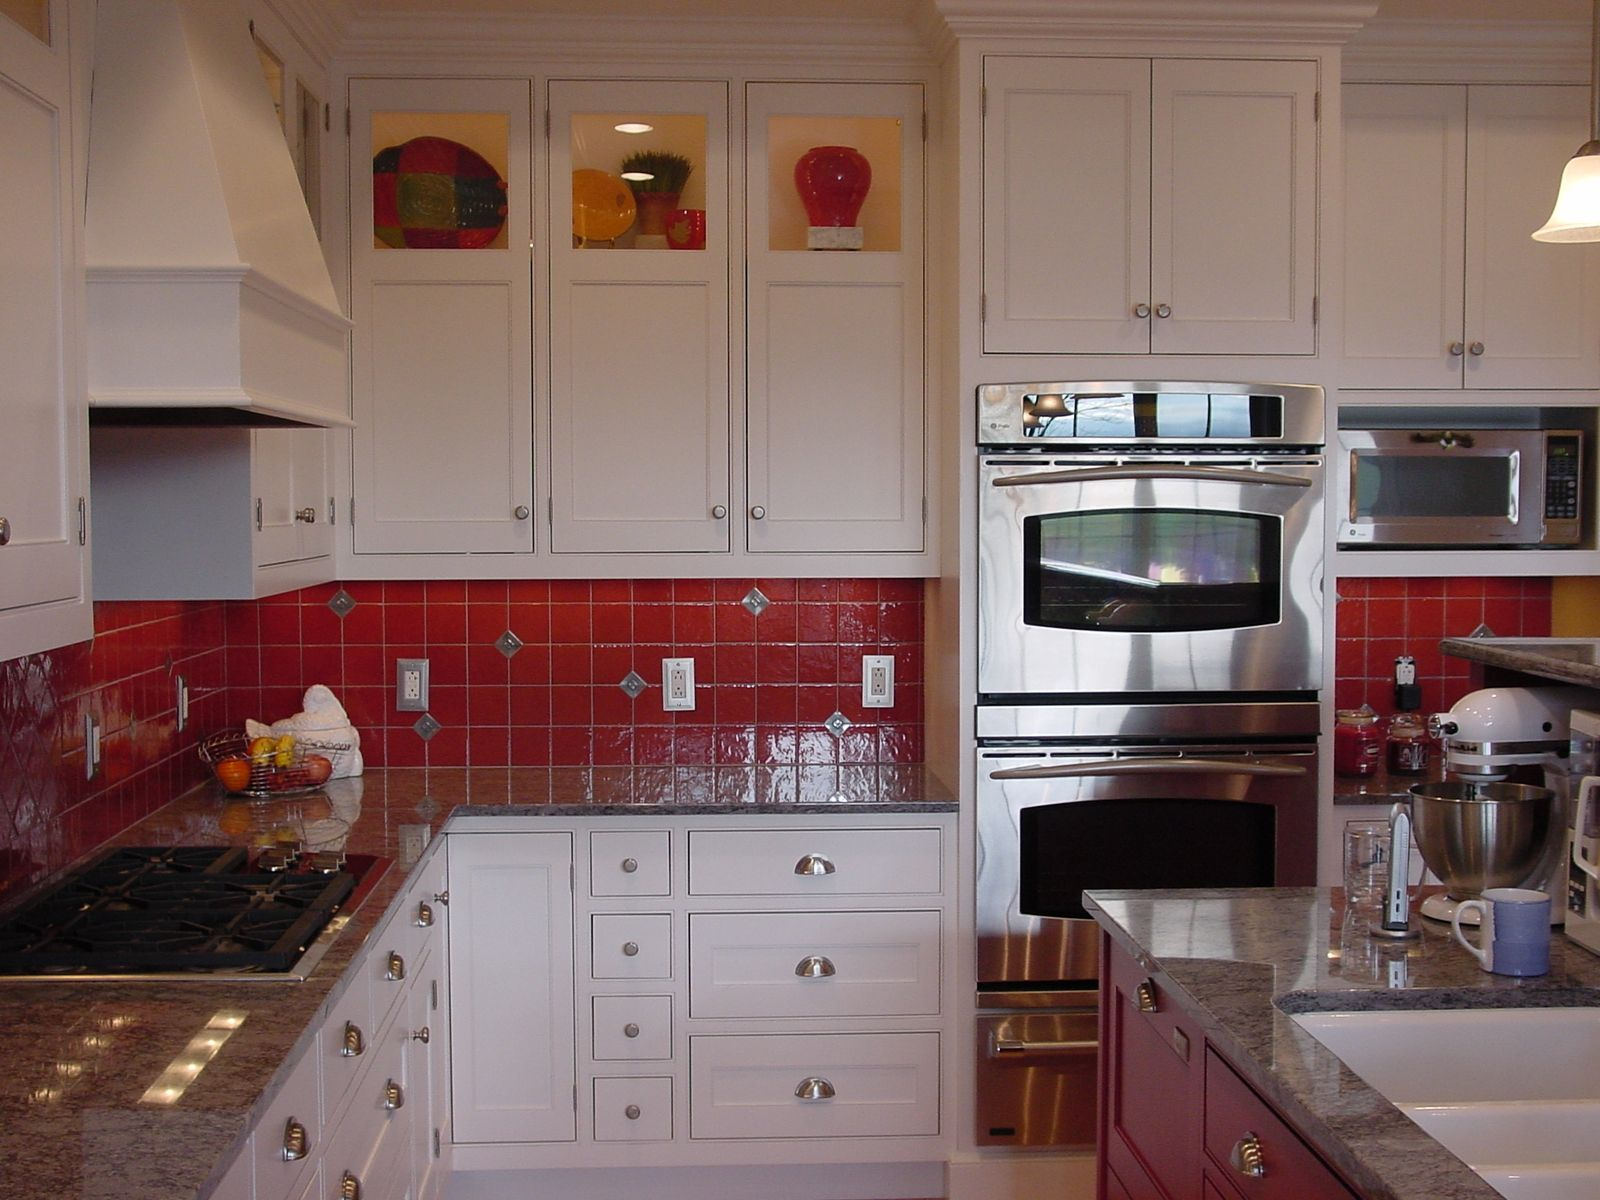 Red & White Kitchen (With images) | Red and white kitchen ...